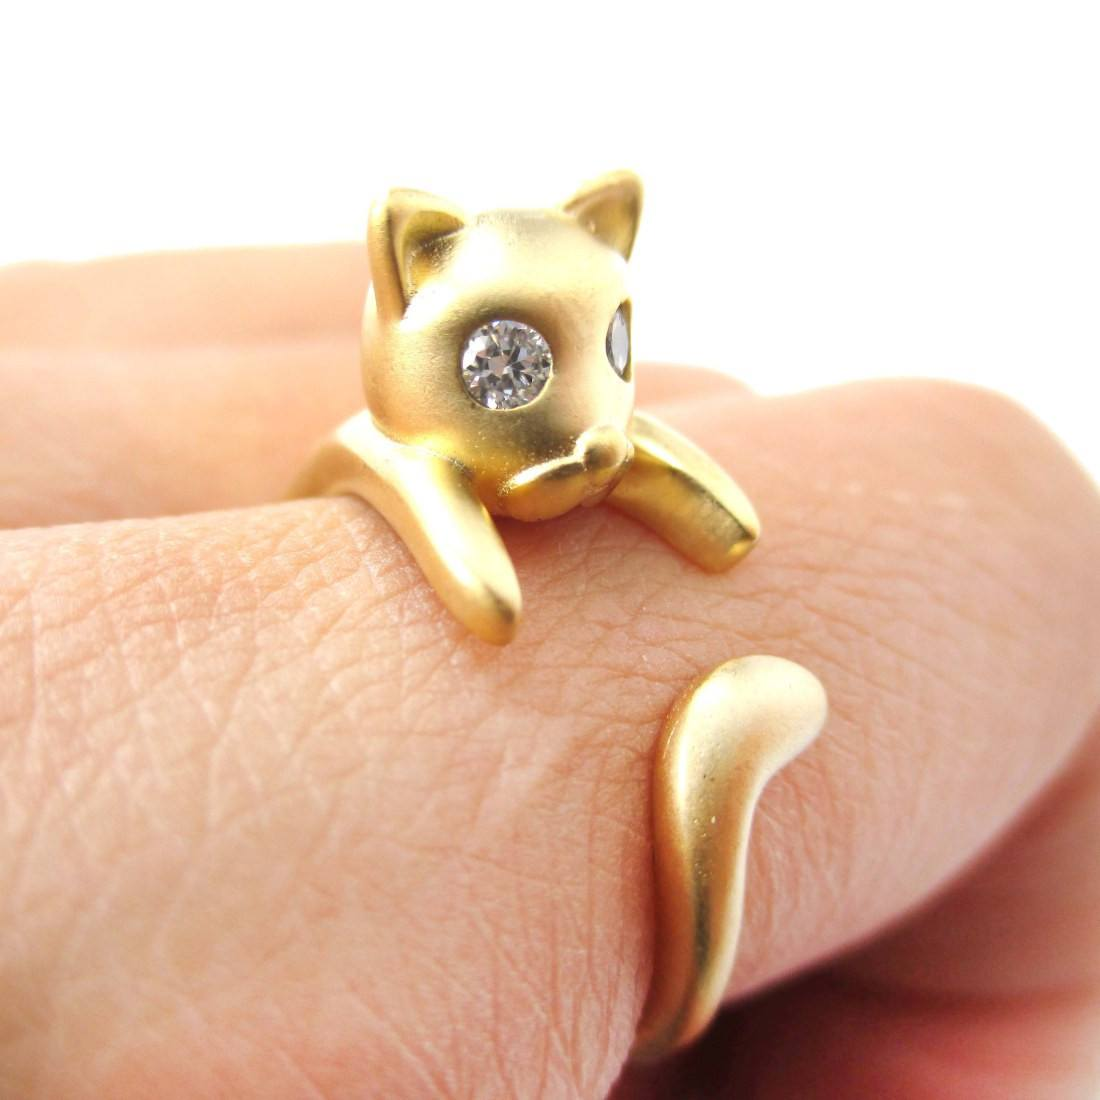 Adorable Kitty Cat Kitten Sleek Animal Wrap Around Ring in Gold